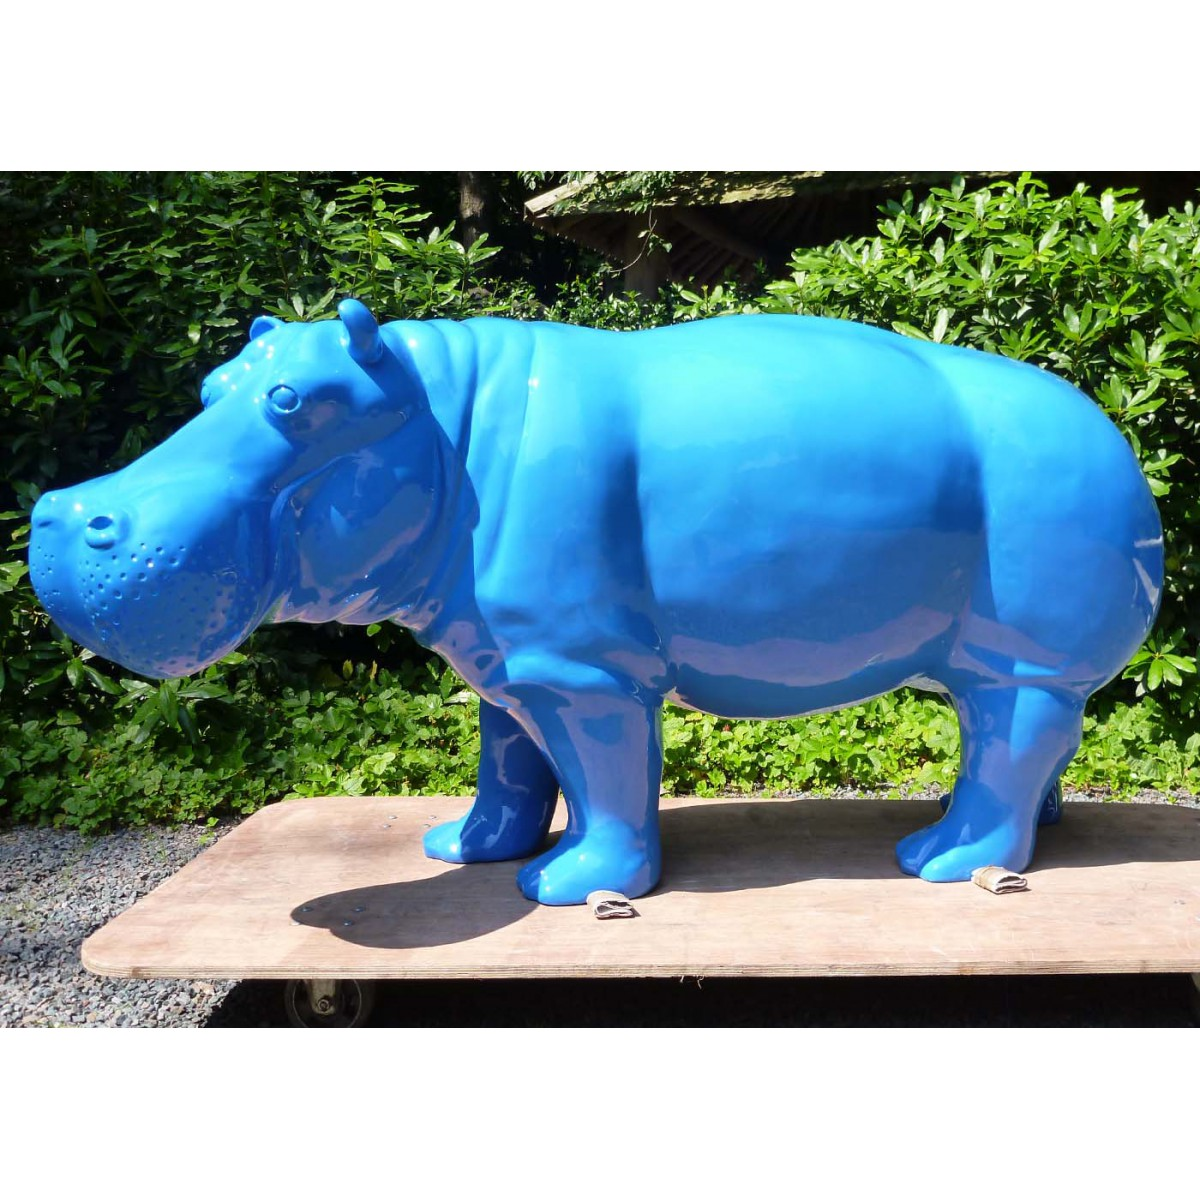 D co murale design troph e t te de bison texartes for Decoration jardin resine